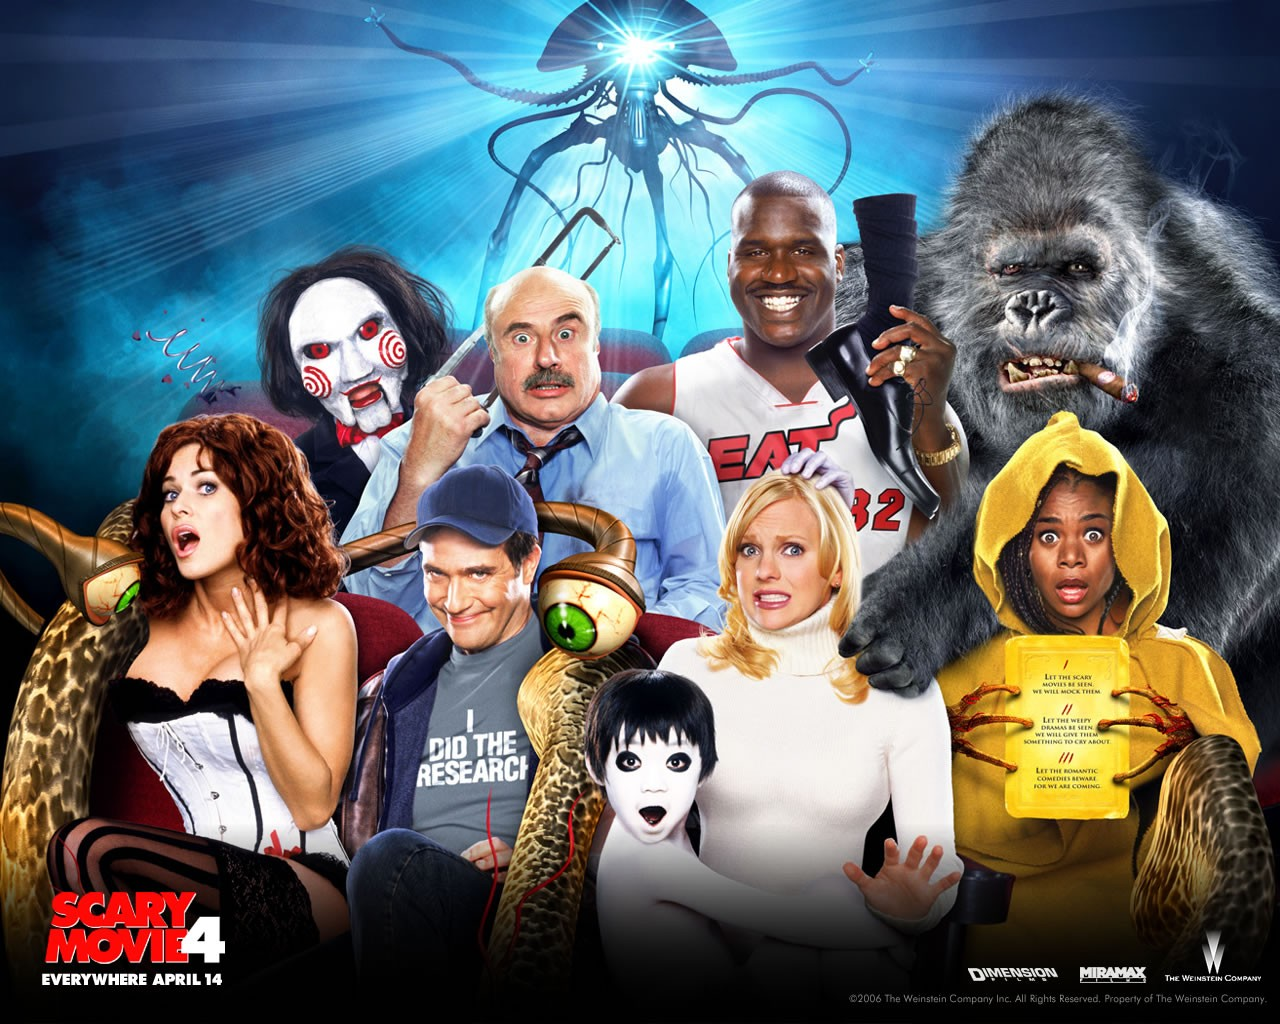 Scary Movie 4 - Les personnages